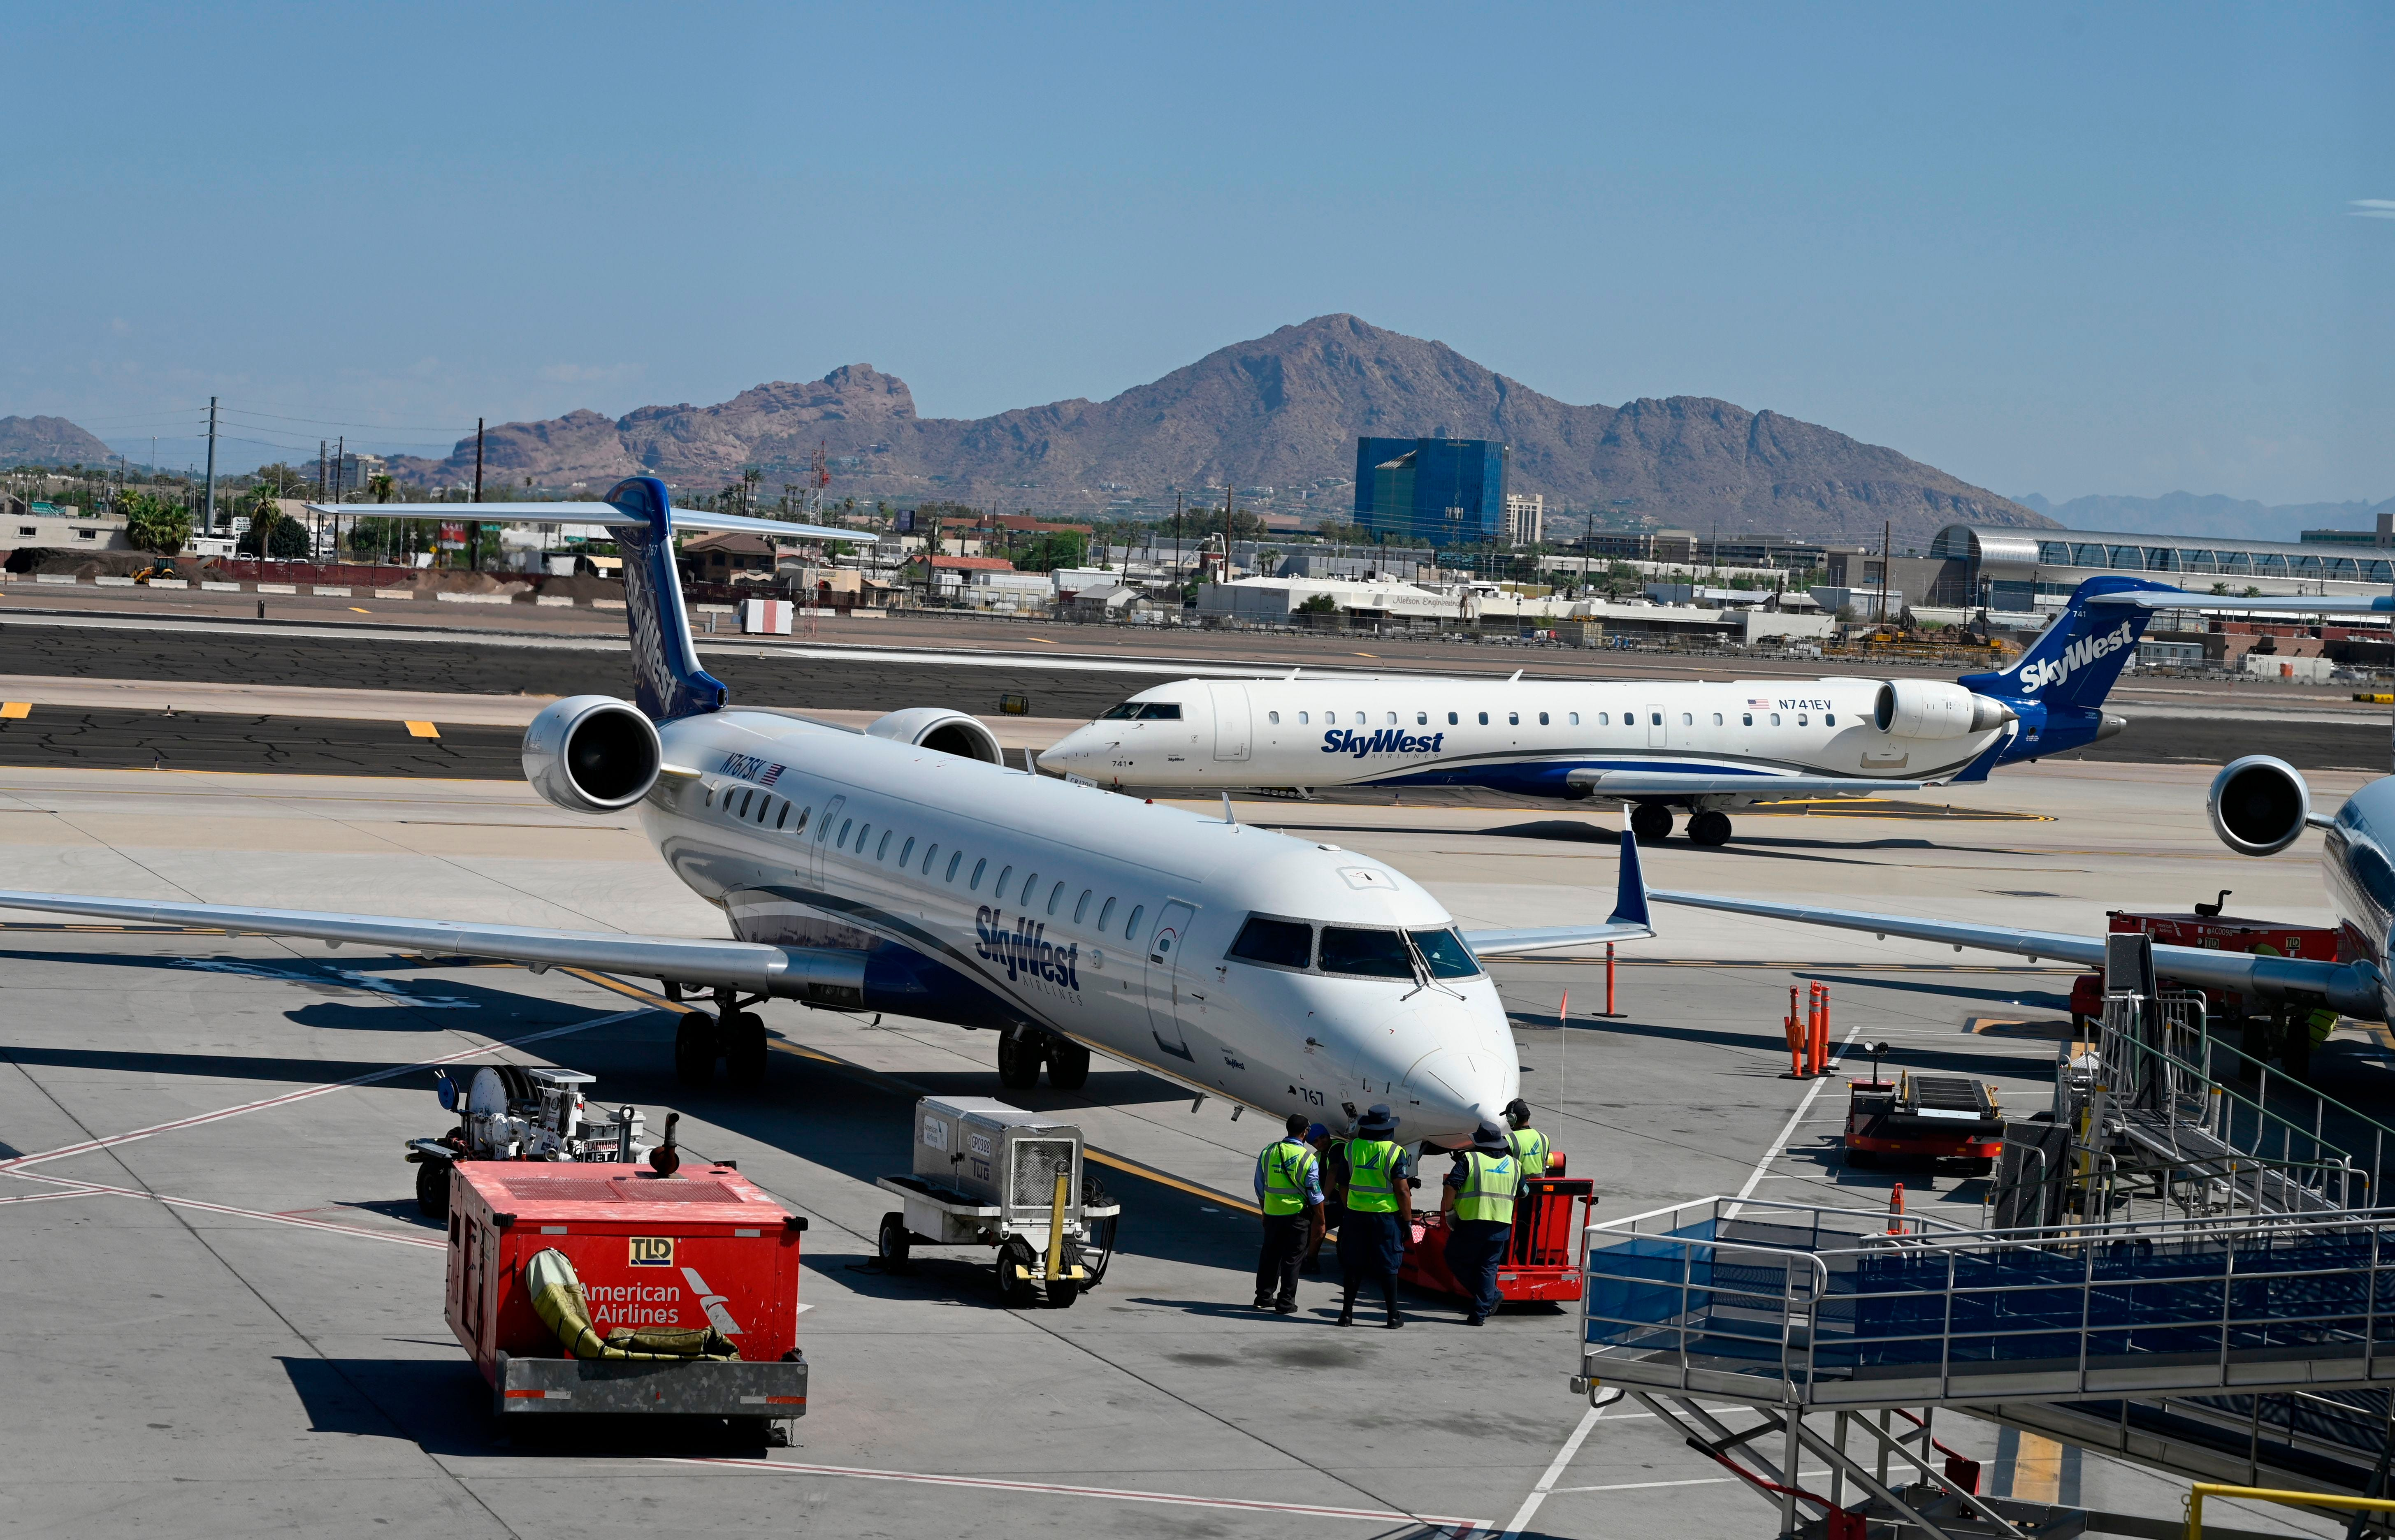 SkyWest cancels more than 100 Saturday flights: American, Delta, United, Alaska airlines impacted